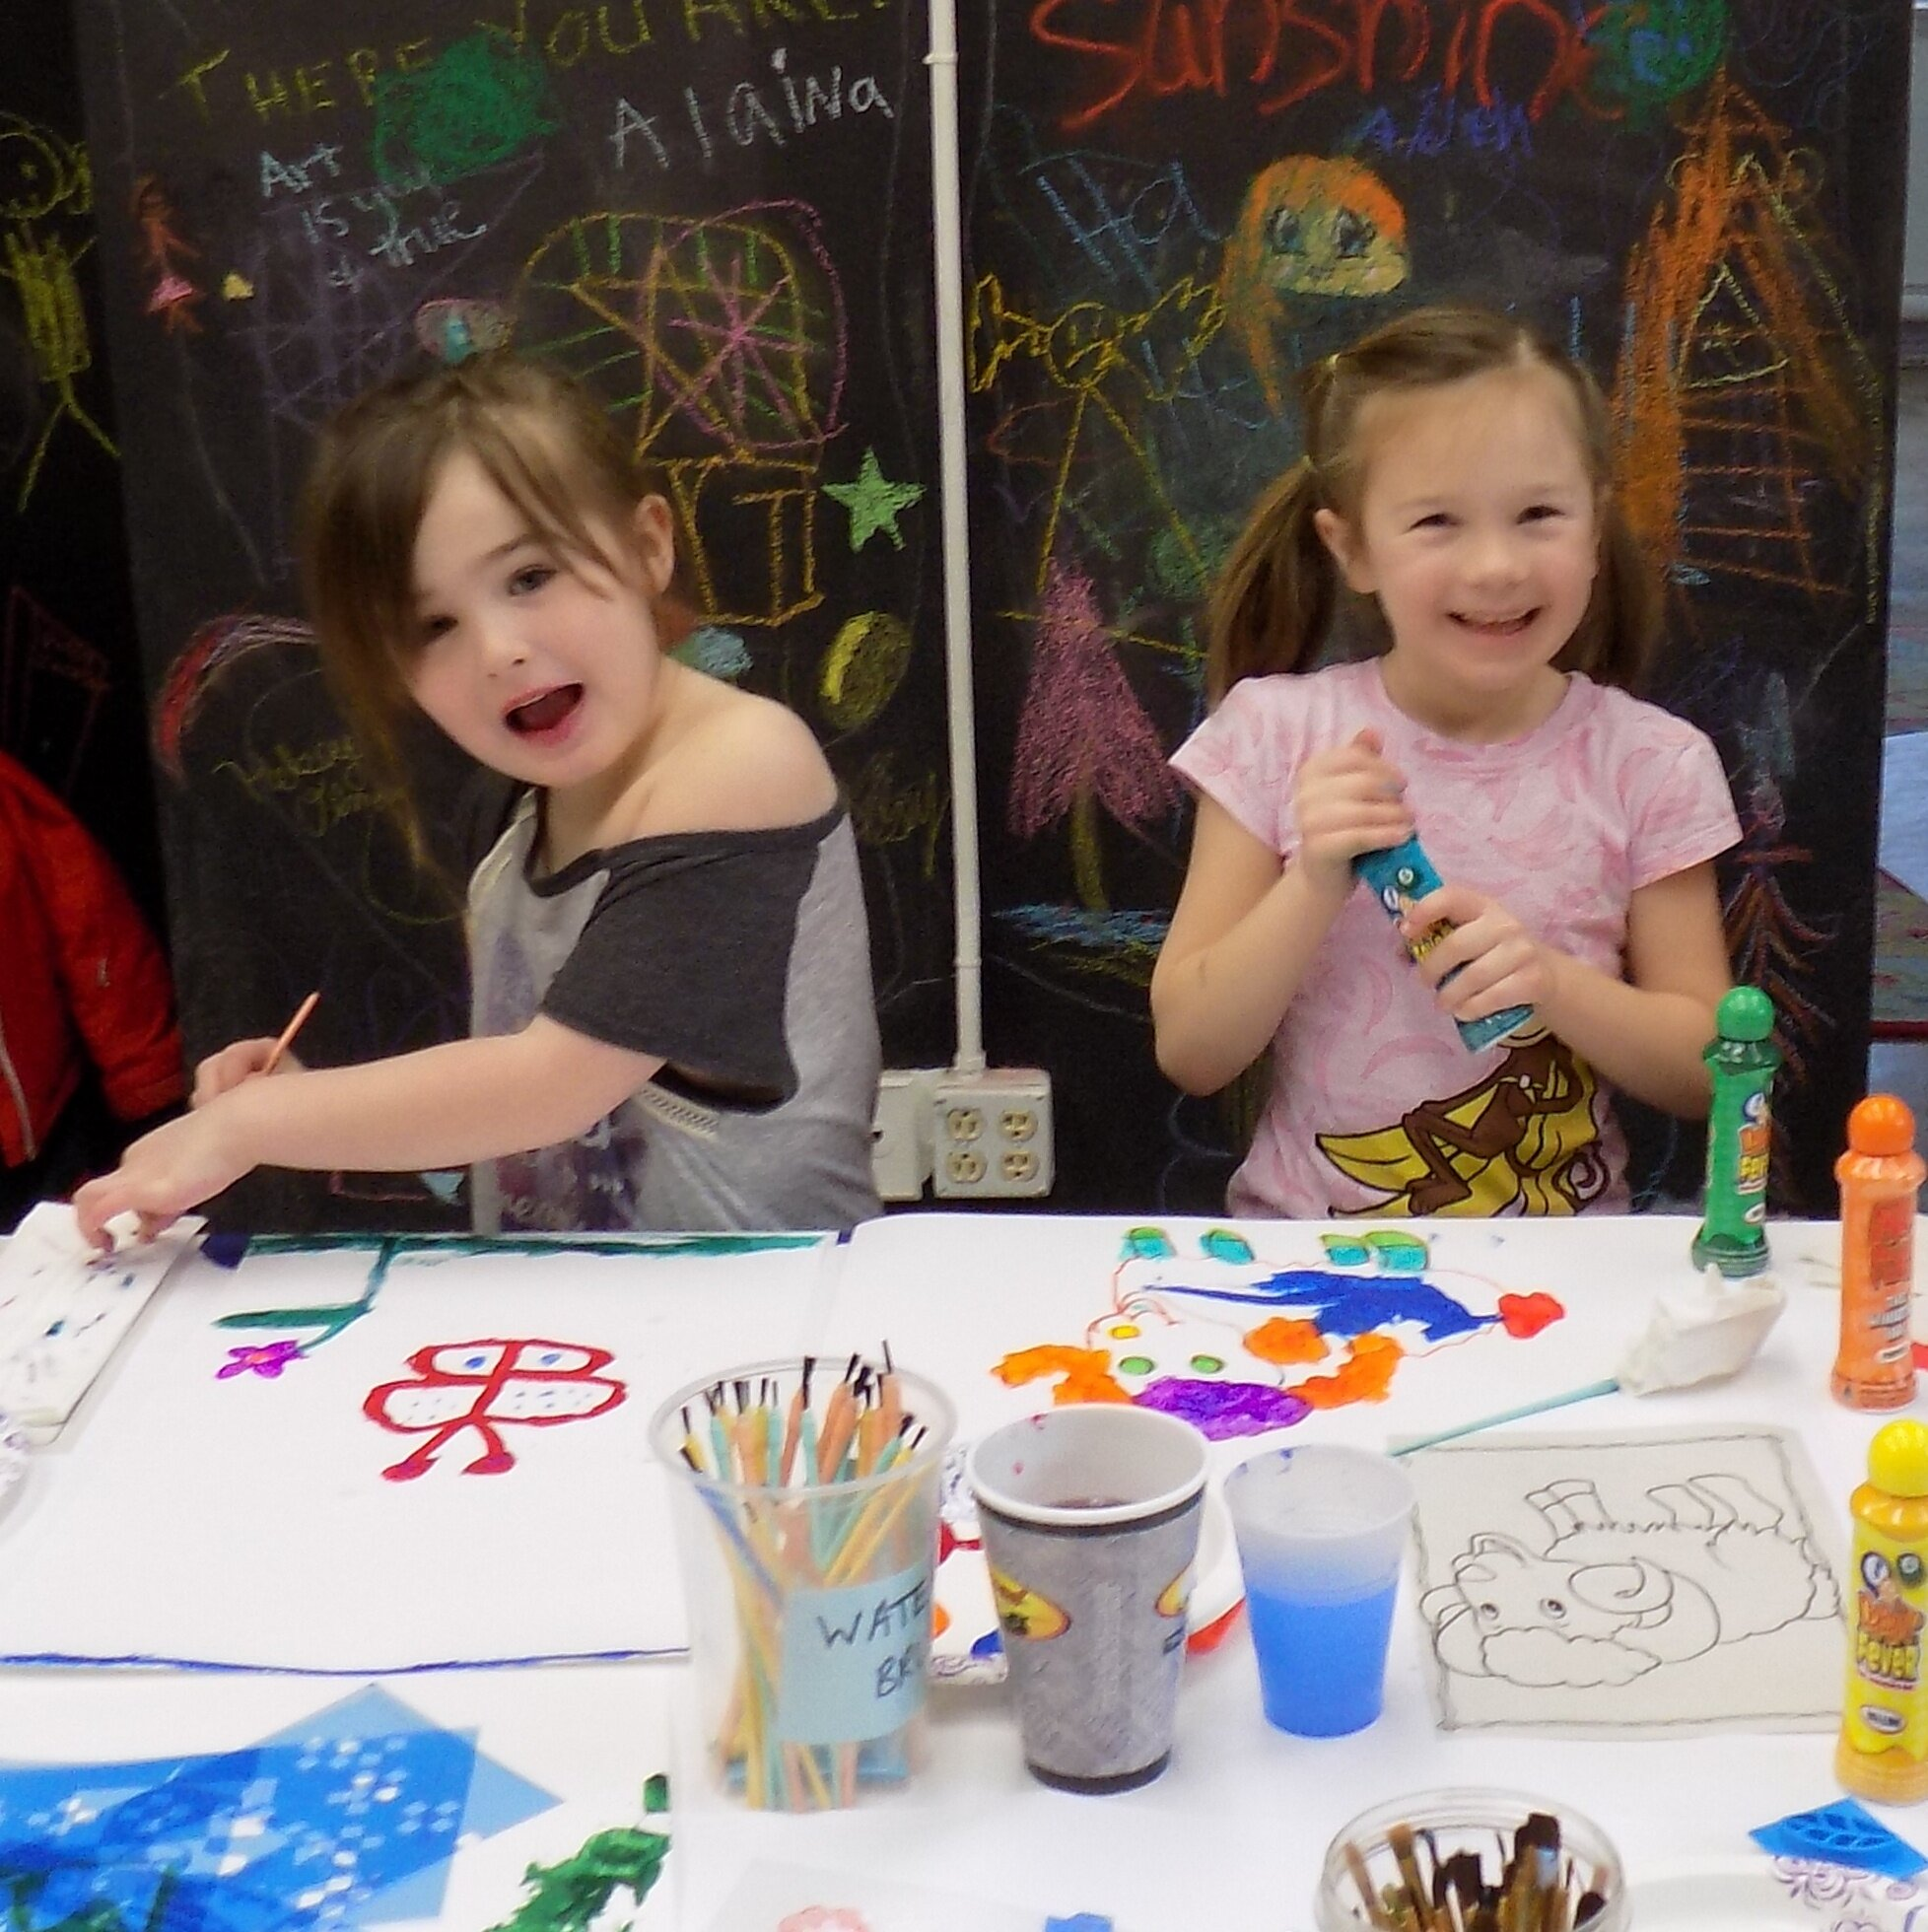 Isabelle Loberg and Sadie Nolen painting in one of Kathy McLaughlin's workshops for kids.